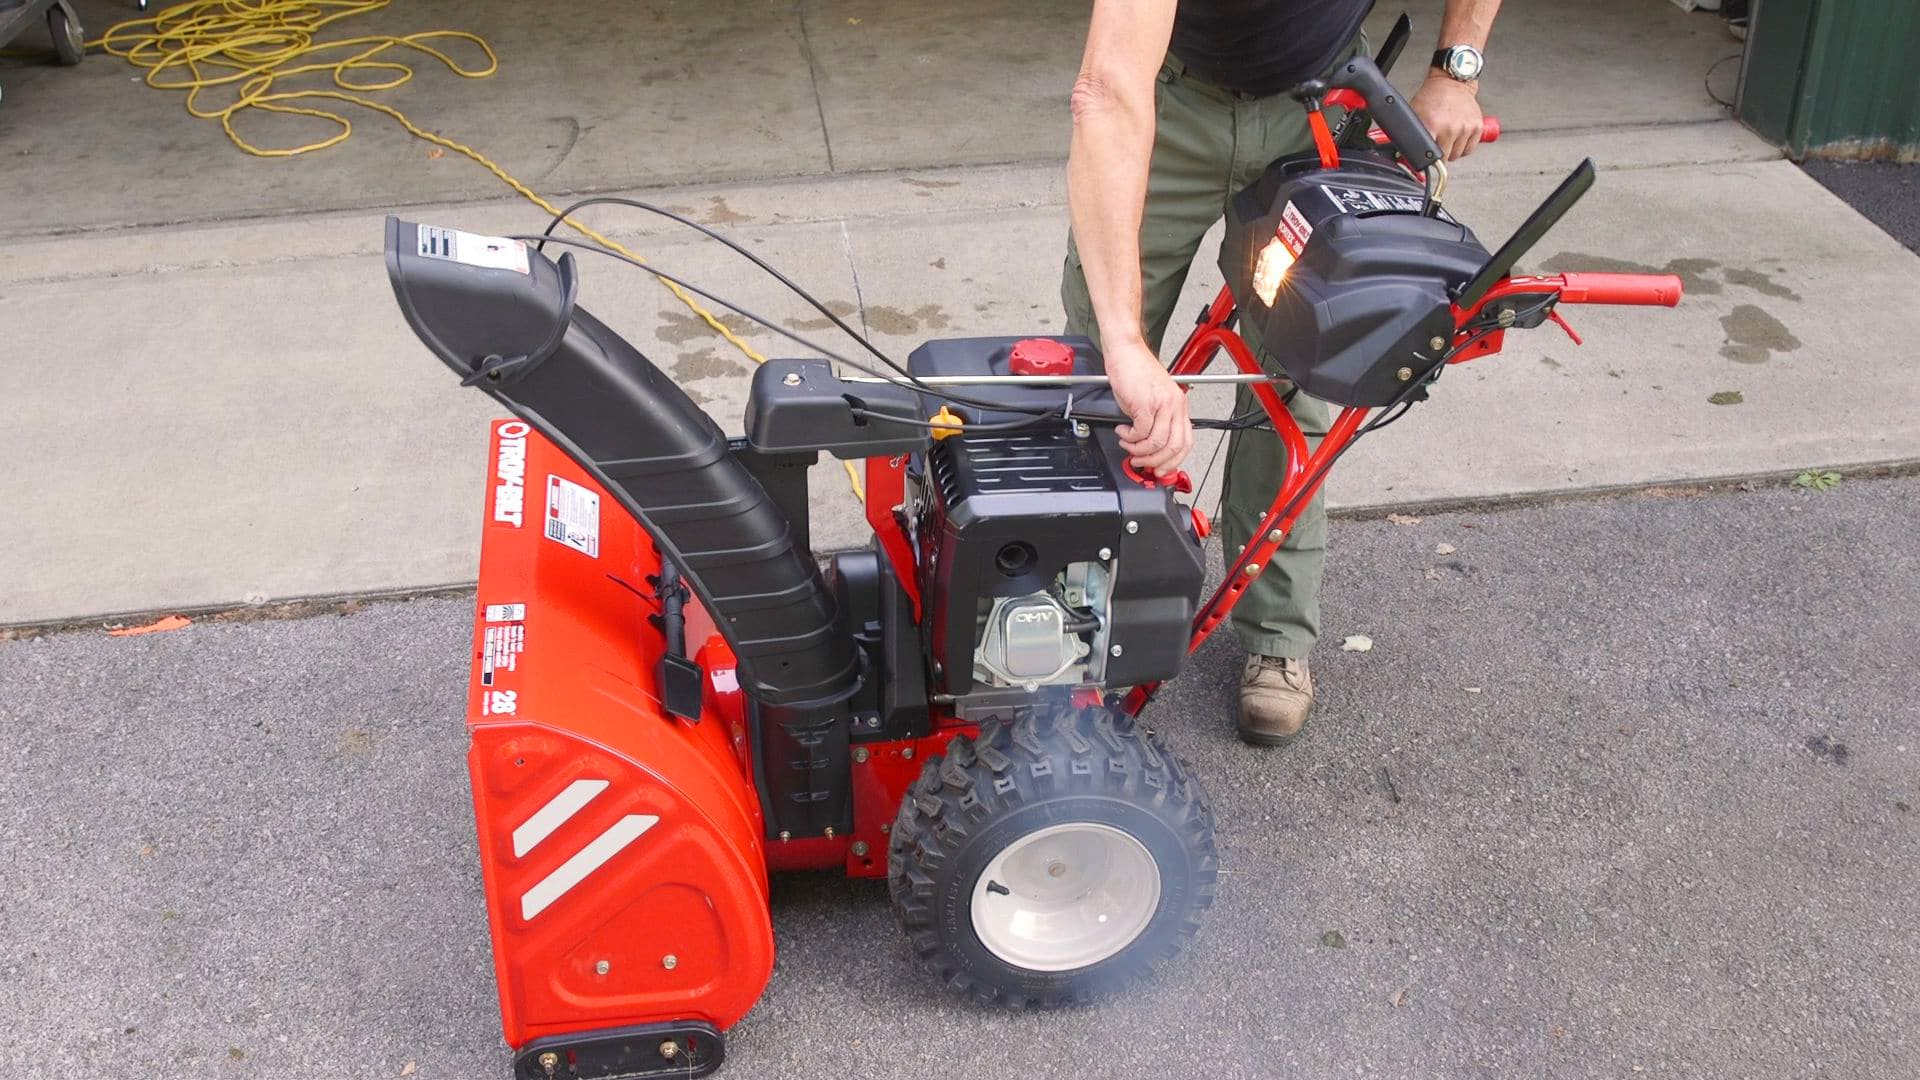 How to Drain Gas from Snowblower? - Step-By-Step Guide